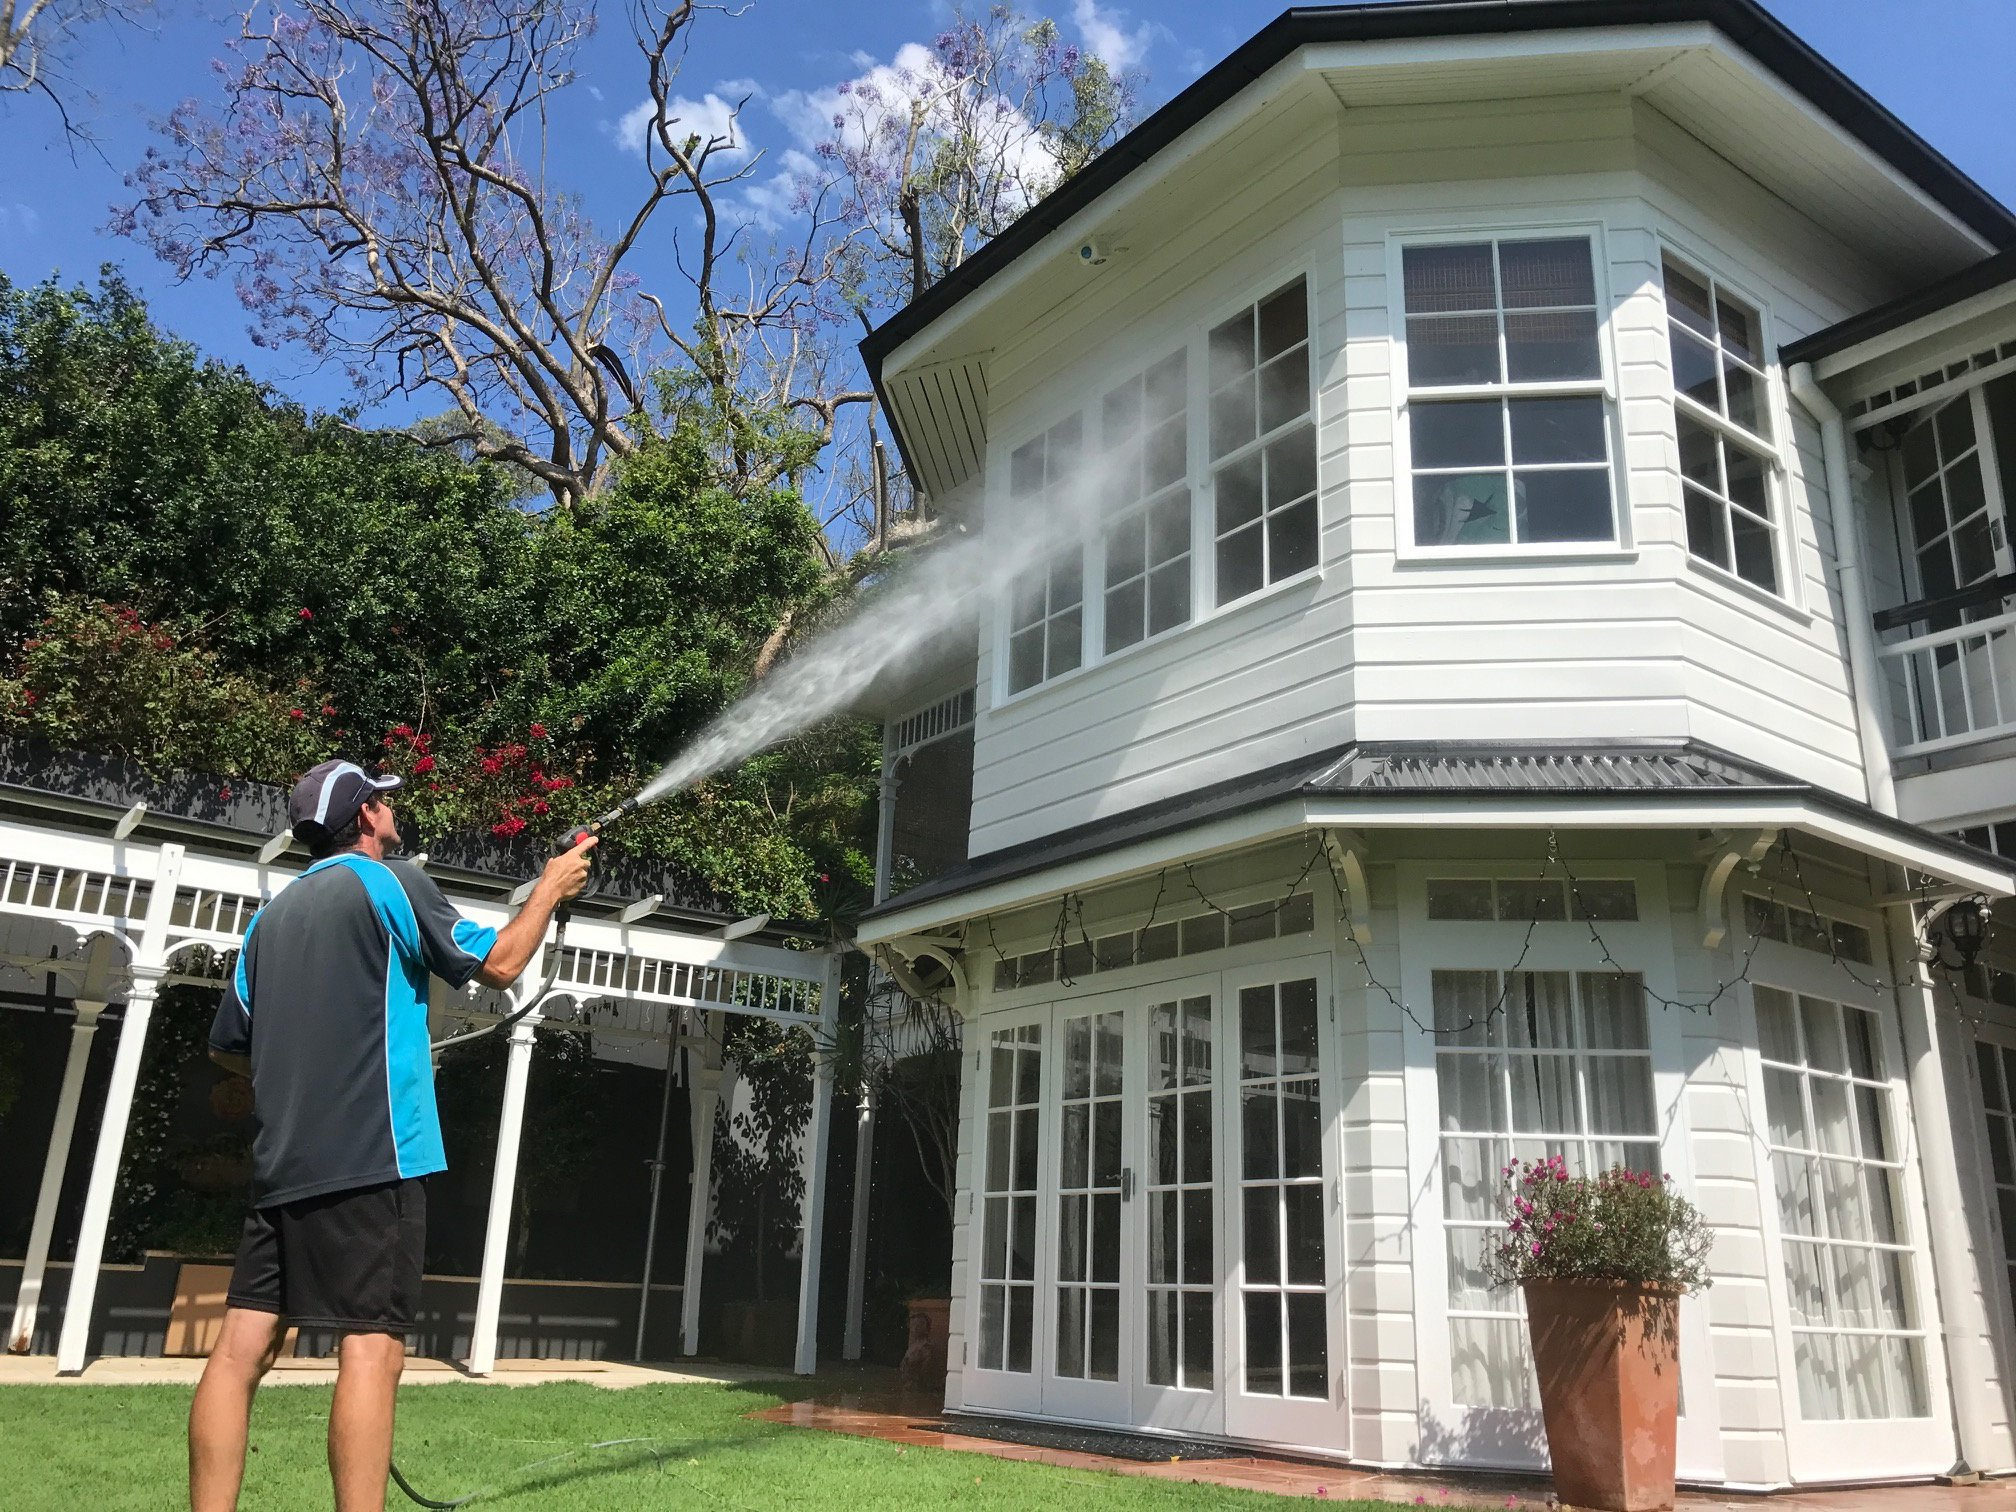 Maleny Roof washing services